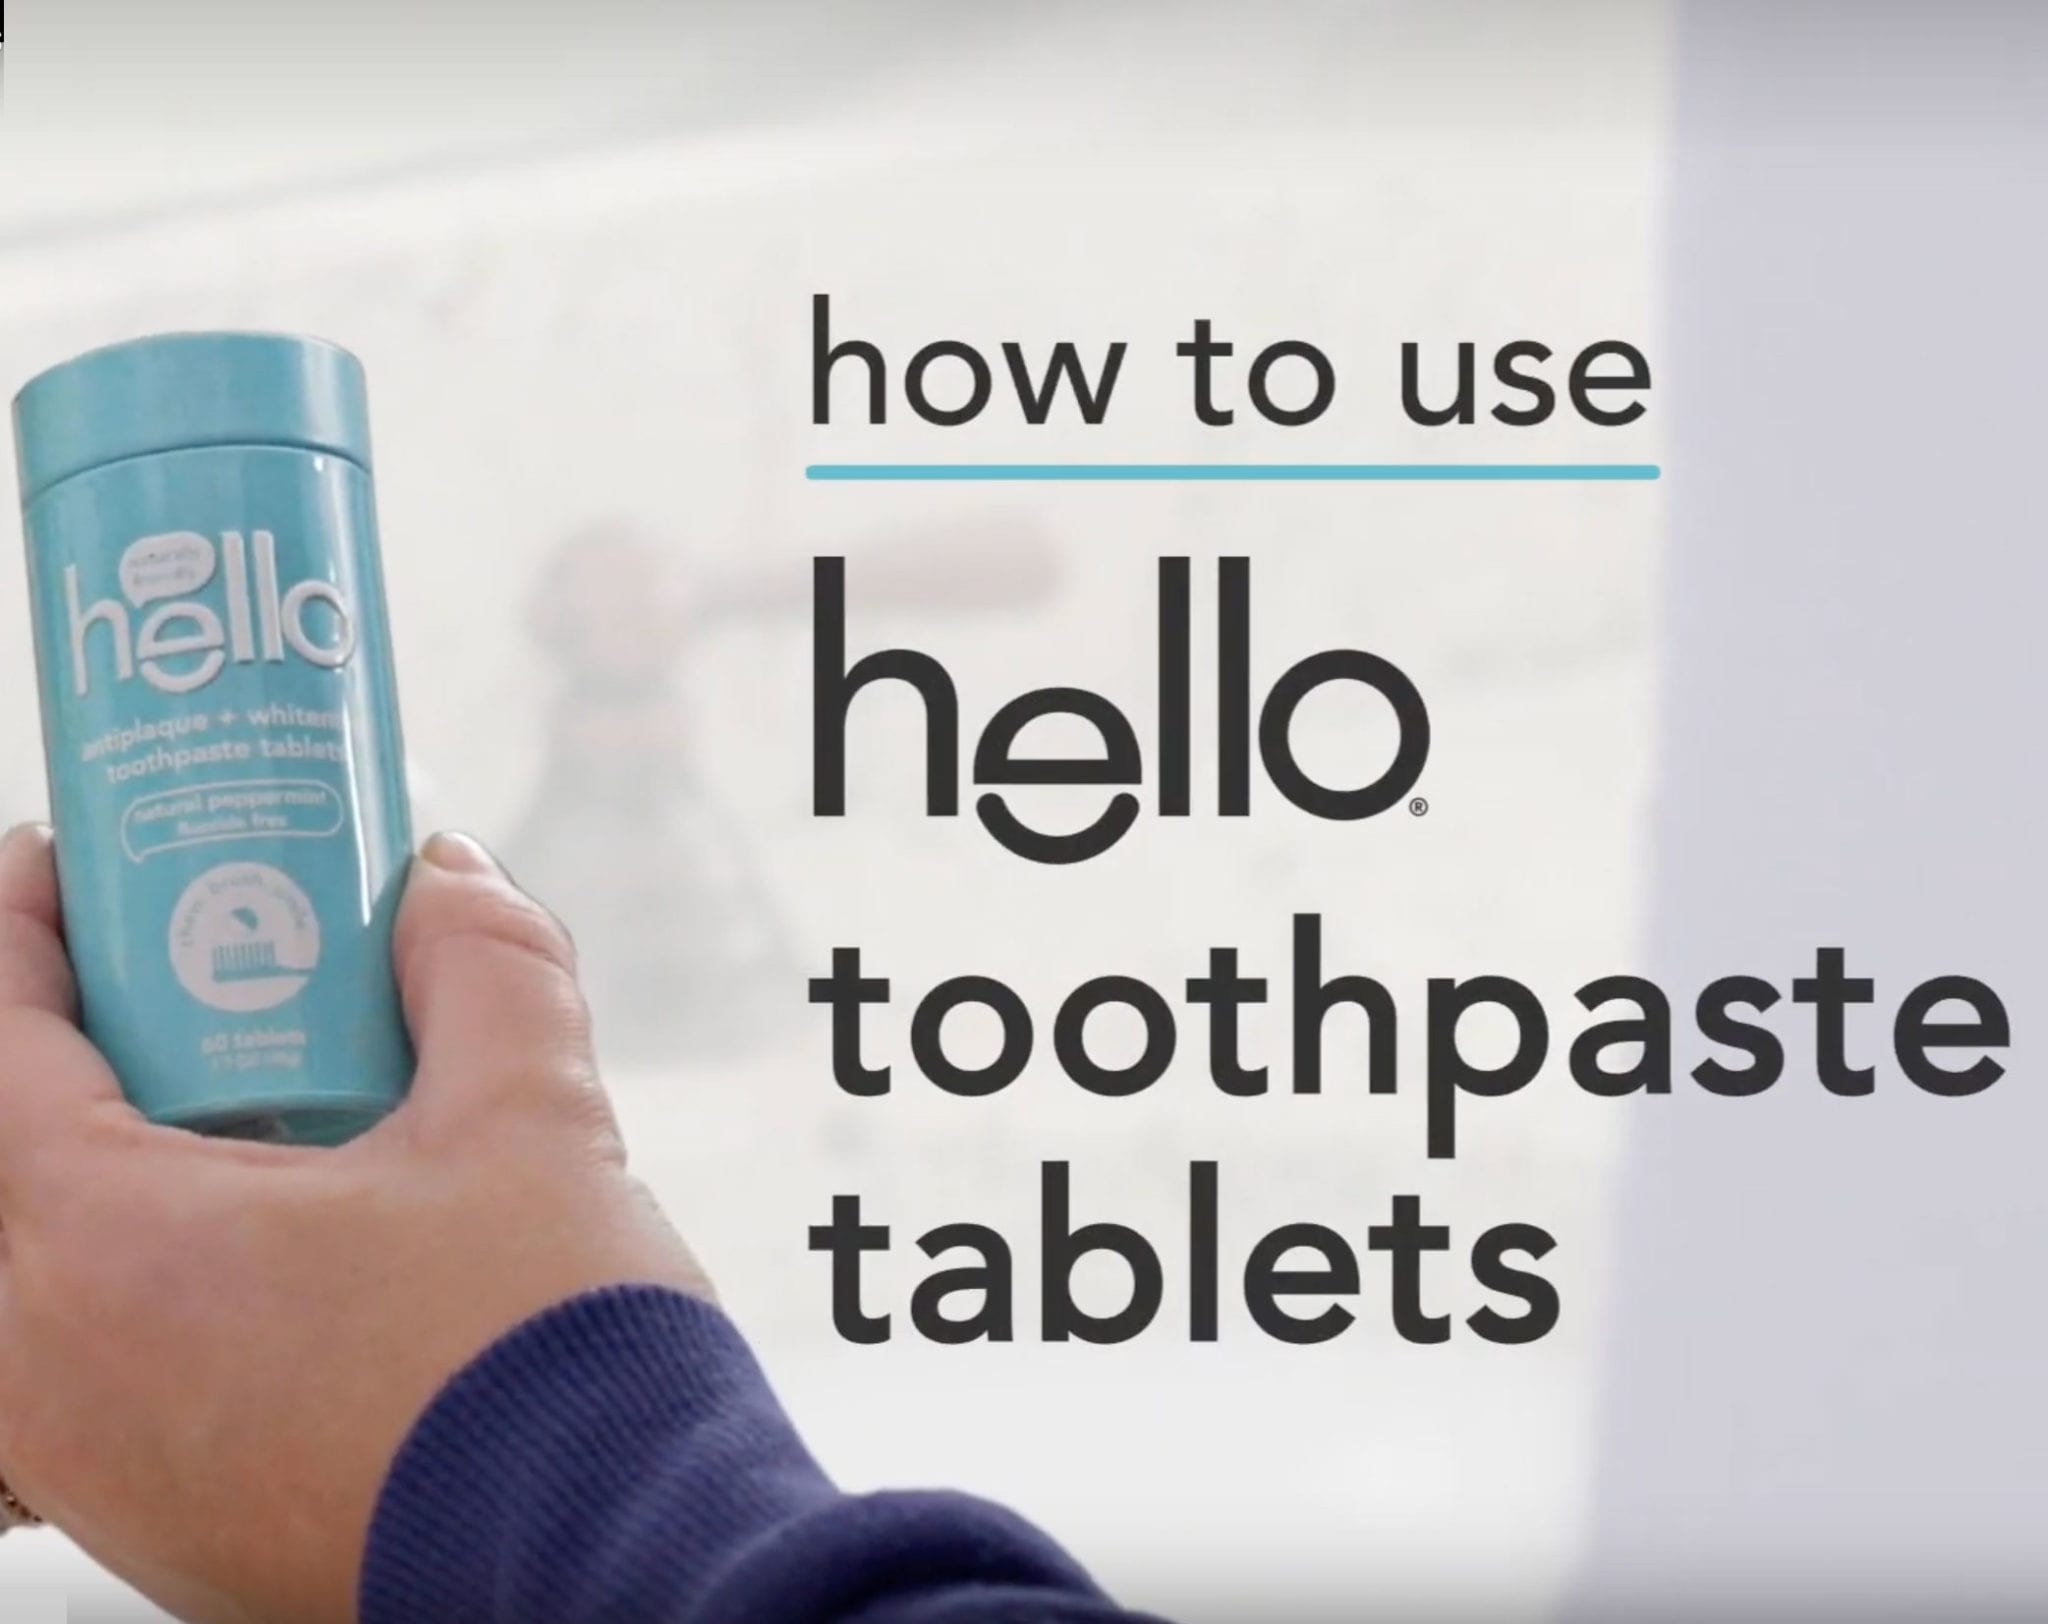 how to use toothpaste tablets